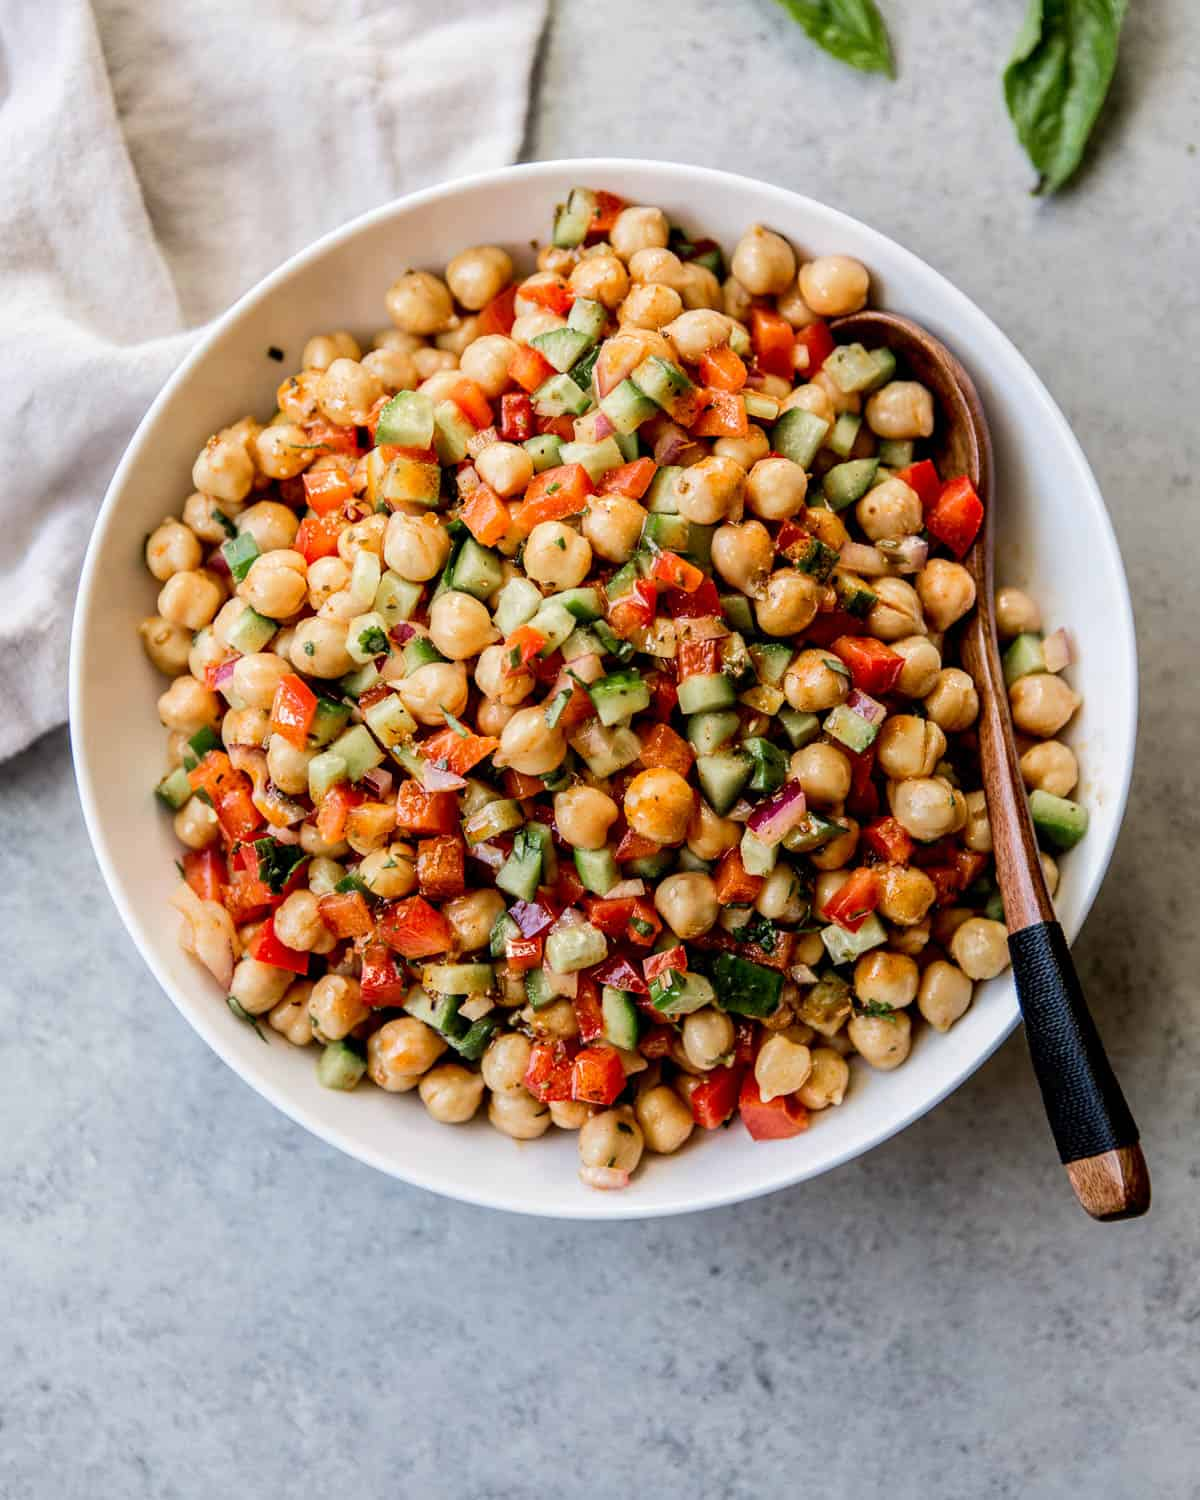 chickpeas and vegetables in a white bowl